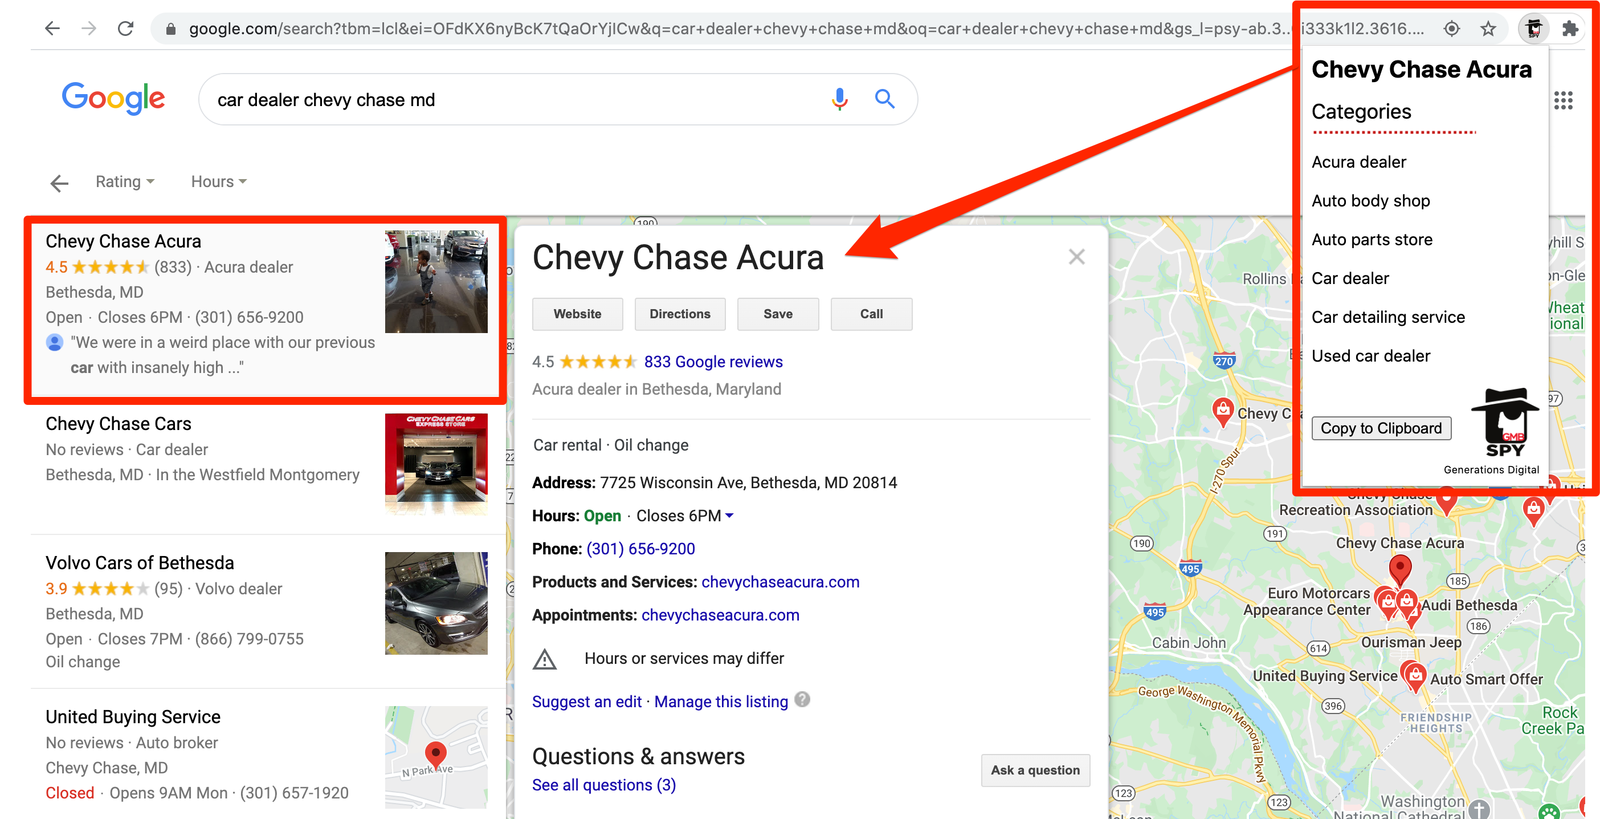 car_dealer_chevy_chase_md_-_Google_Search.png